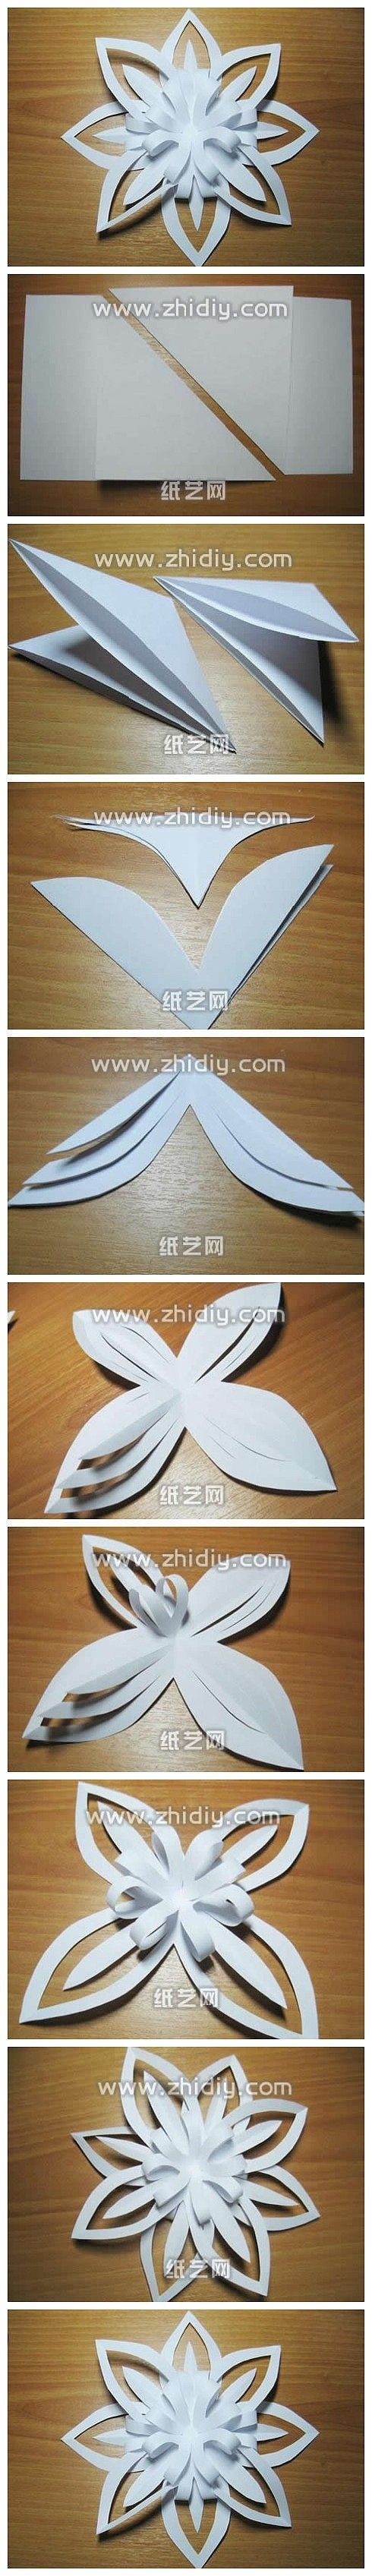 Origami Flowers, with regular paper?! Nice activity for when we're bored!